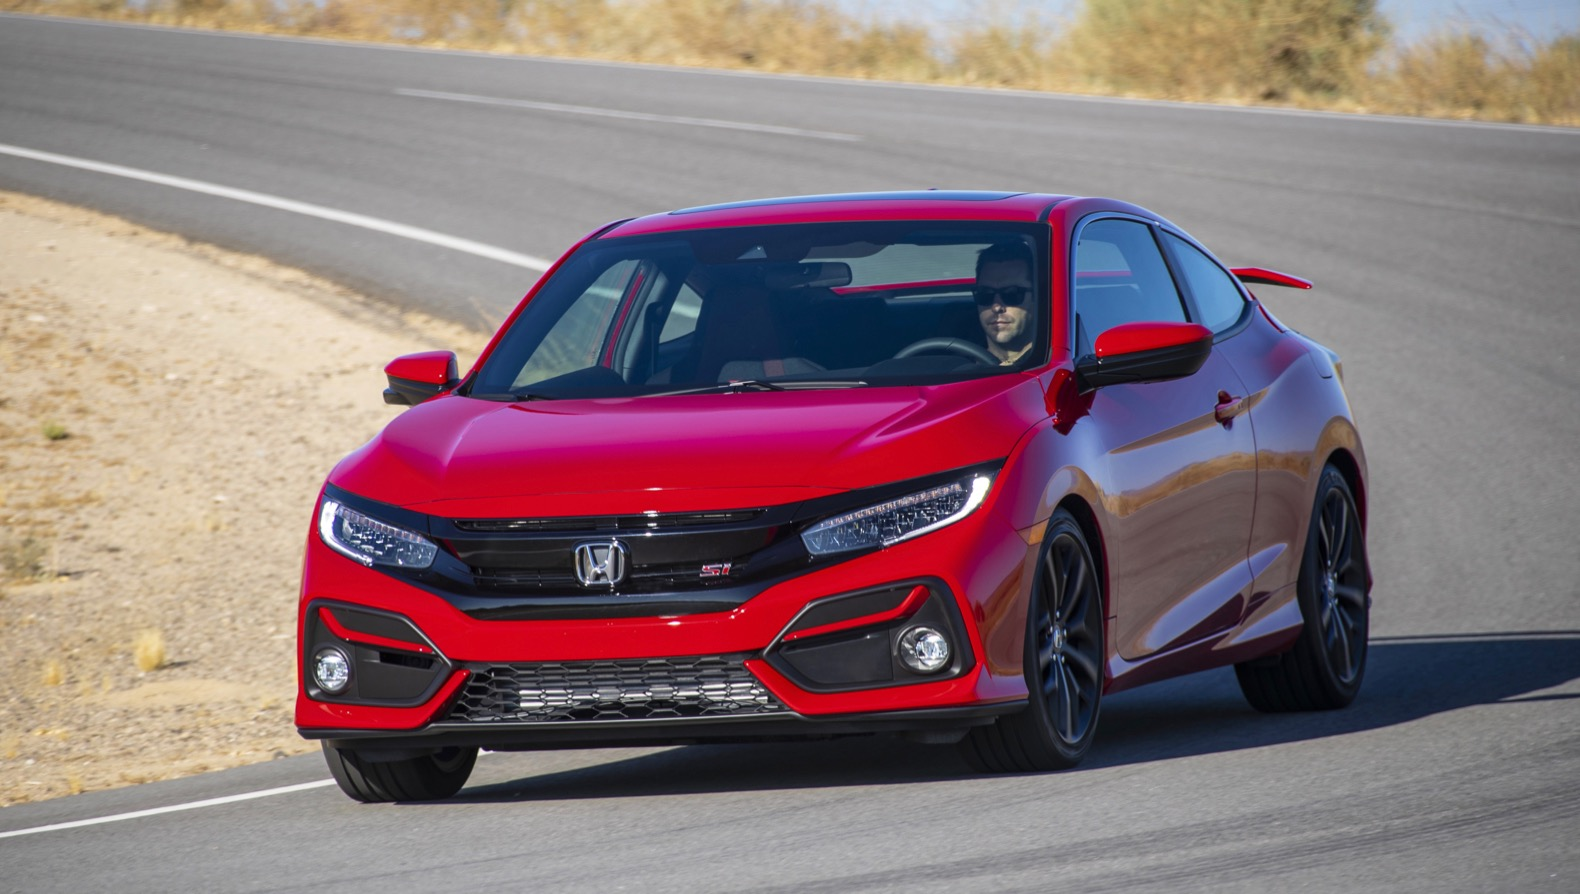 2020 Honda Civic Si Review The Performance Bargain The Torque Report